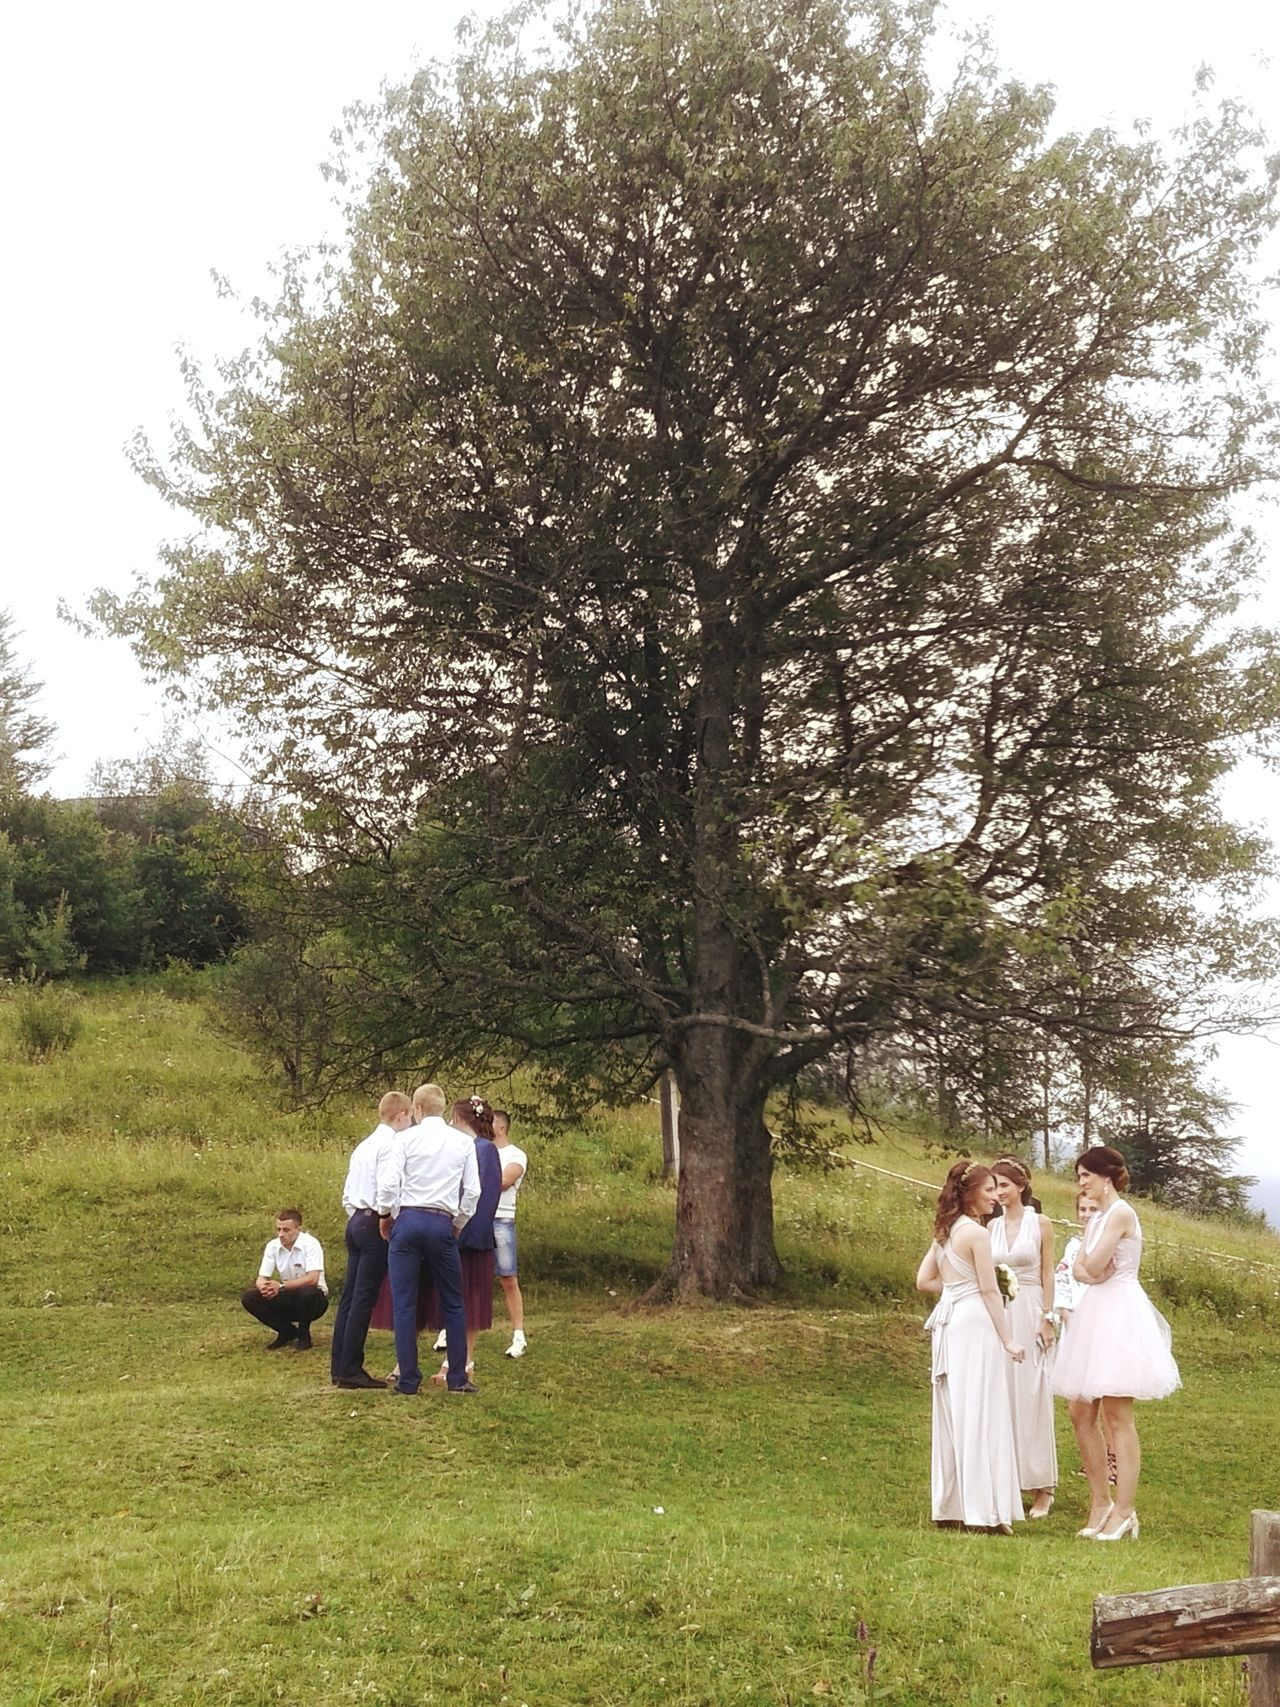 Togetherness Wedding Tree Grass People Nature Outdoors Girls Wedding Photography Yaremche Ukraine Young Adult Men Adult